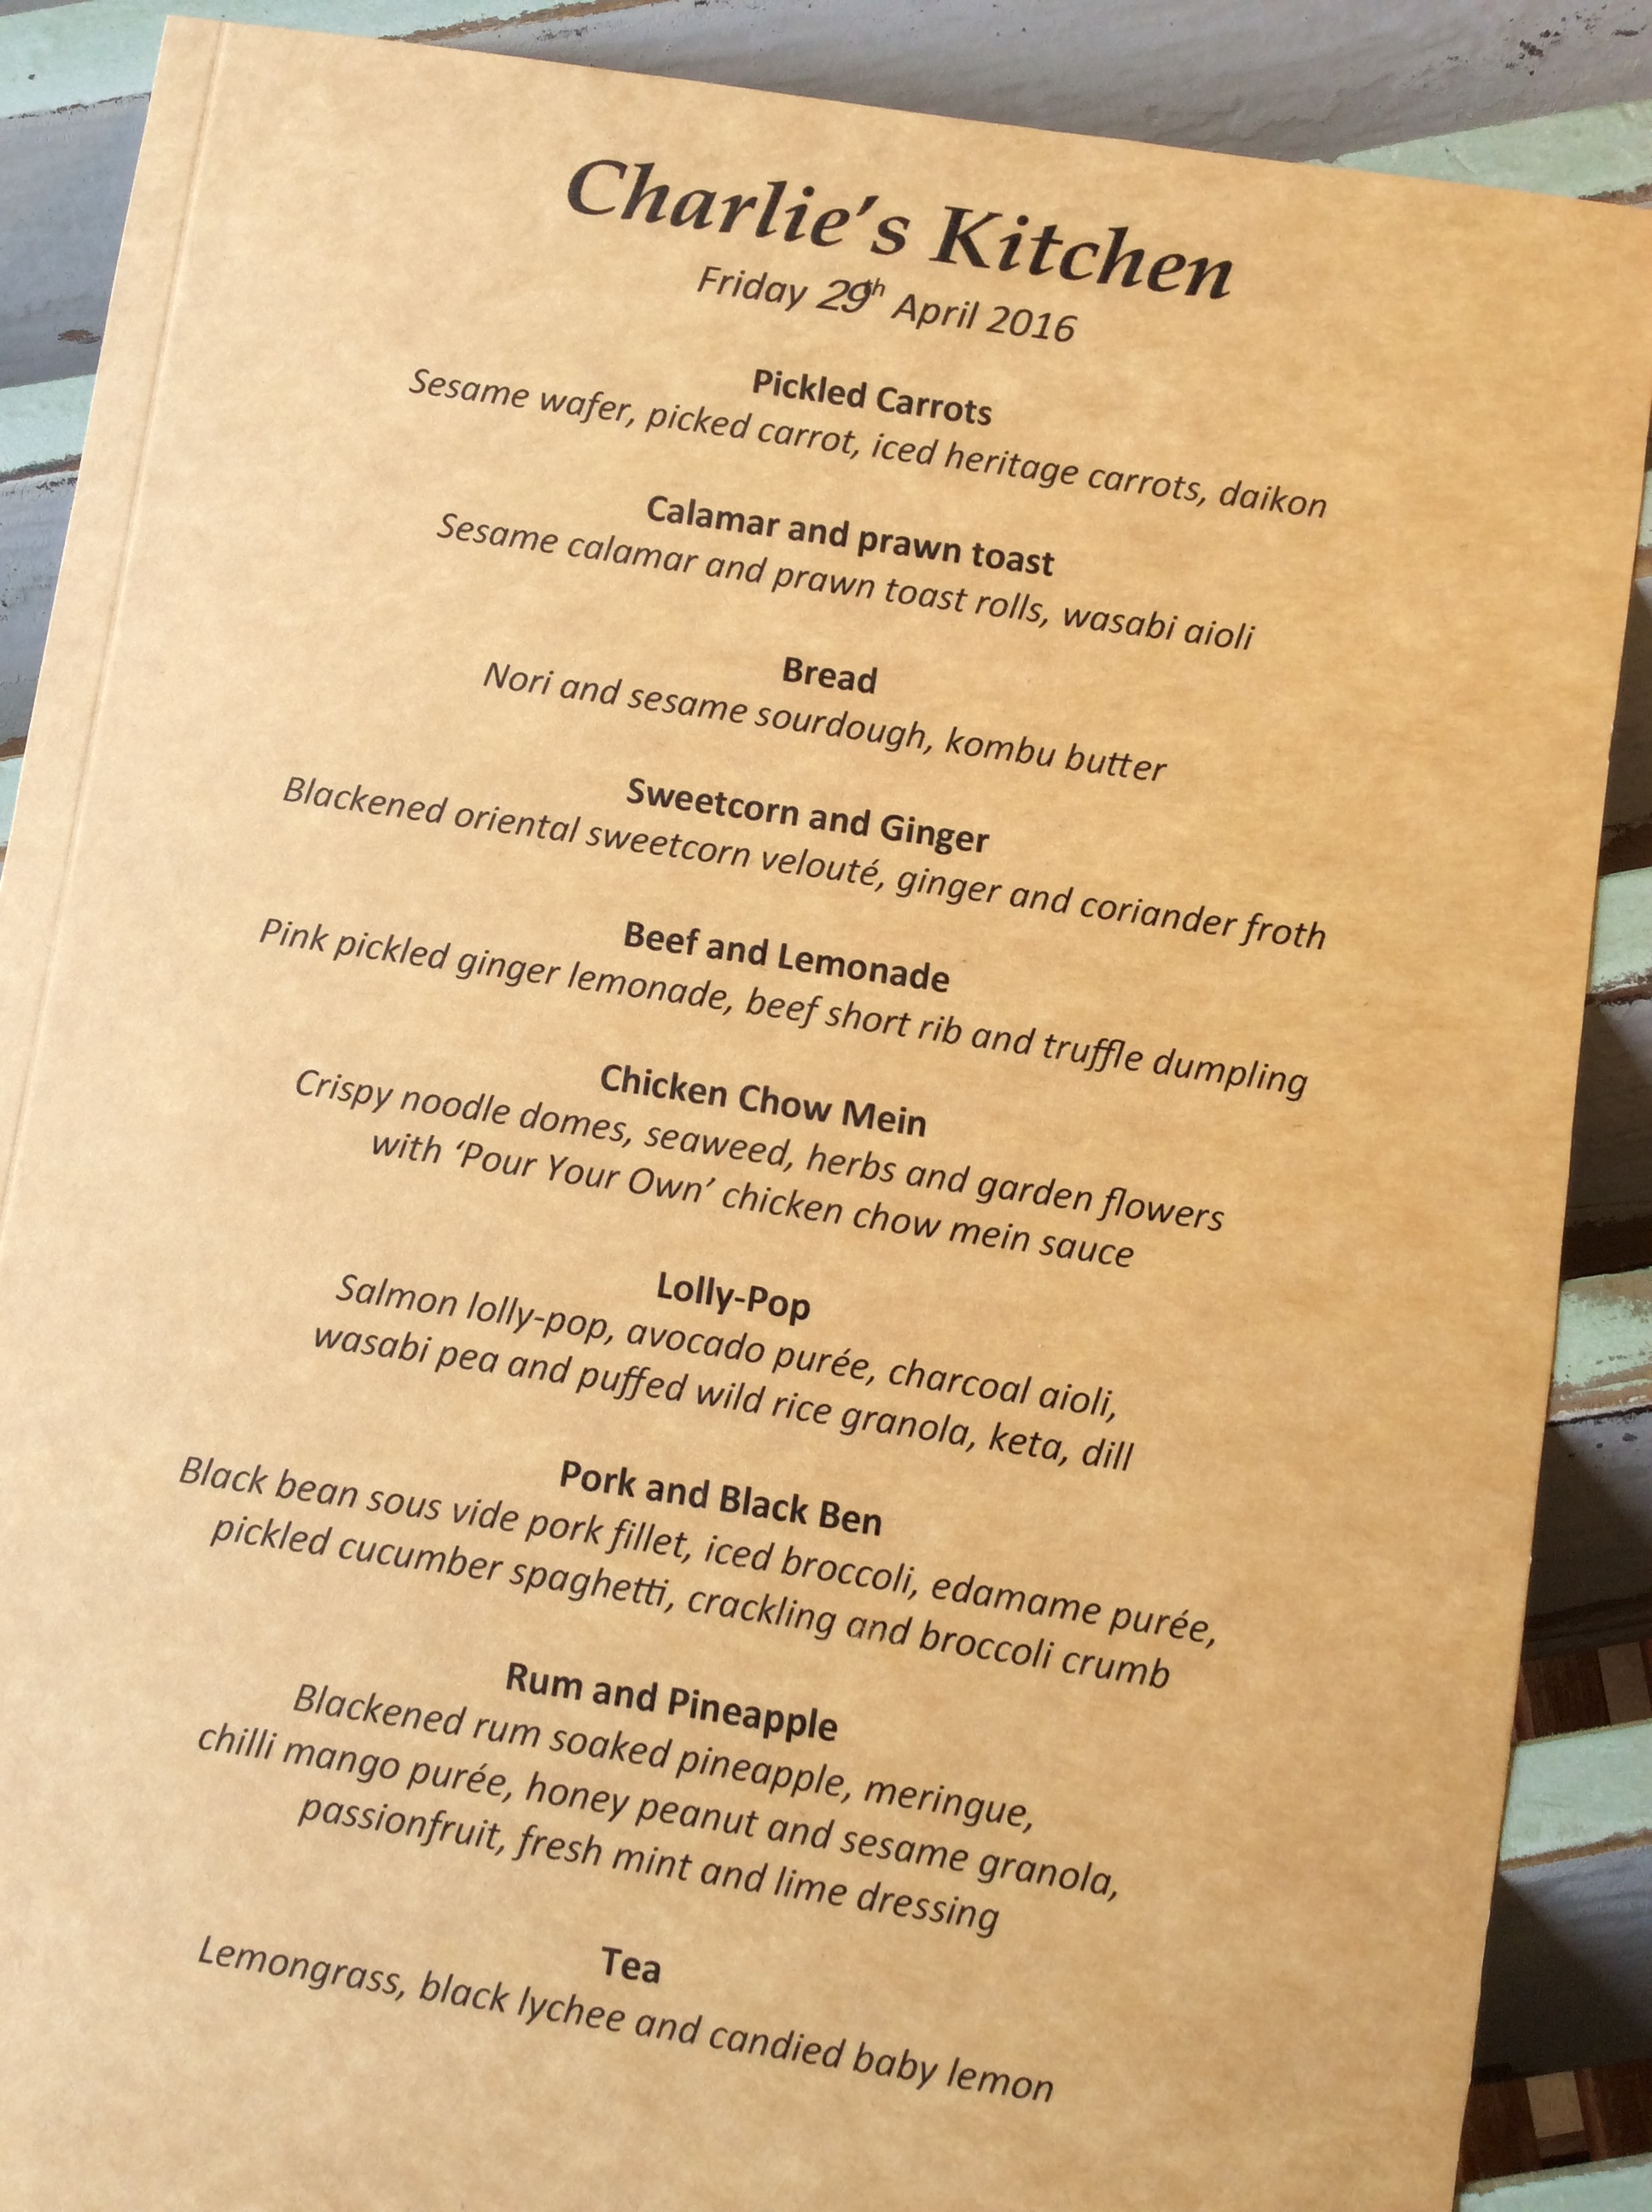 Charlie's Kitchen Menu April 2016